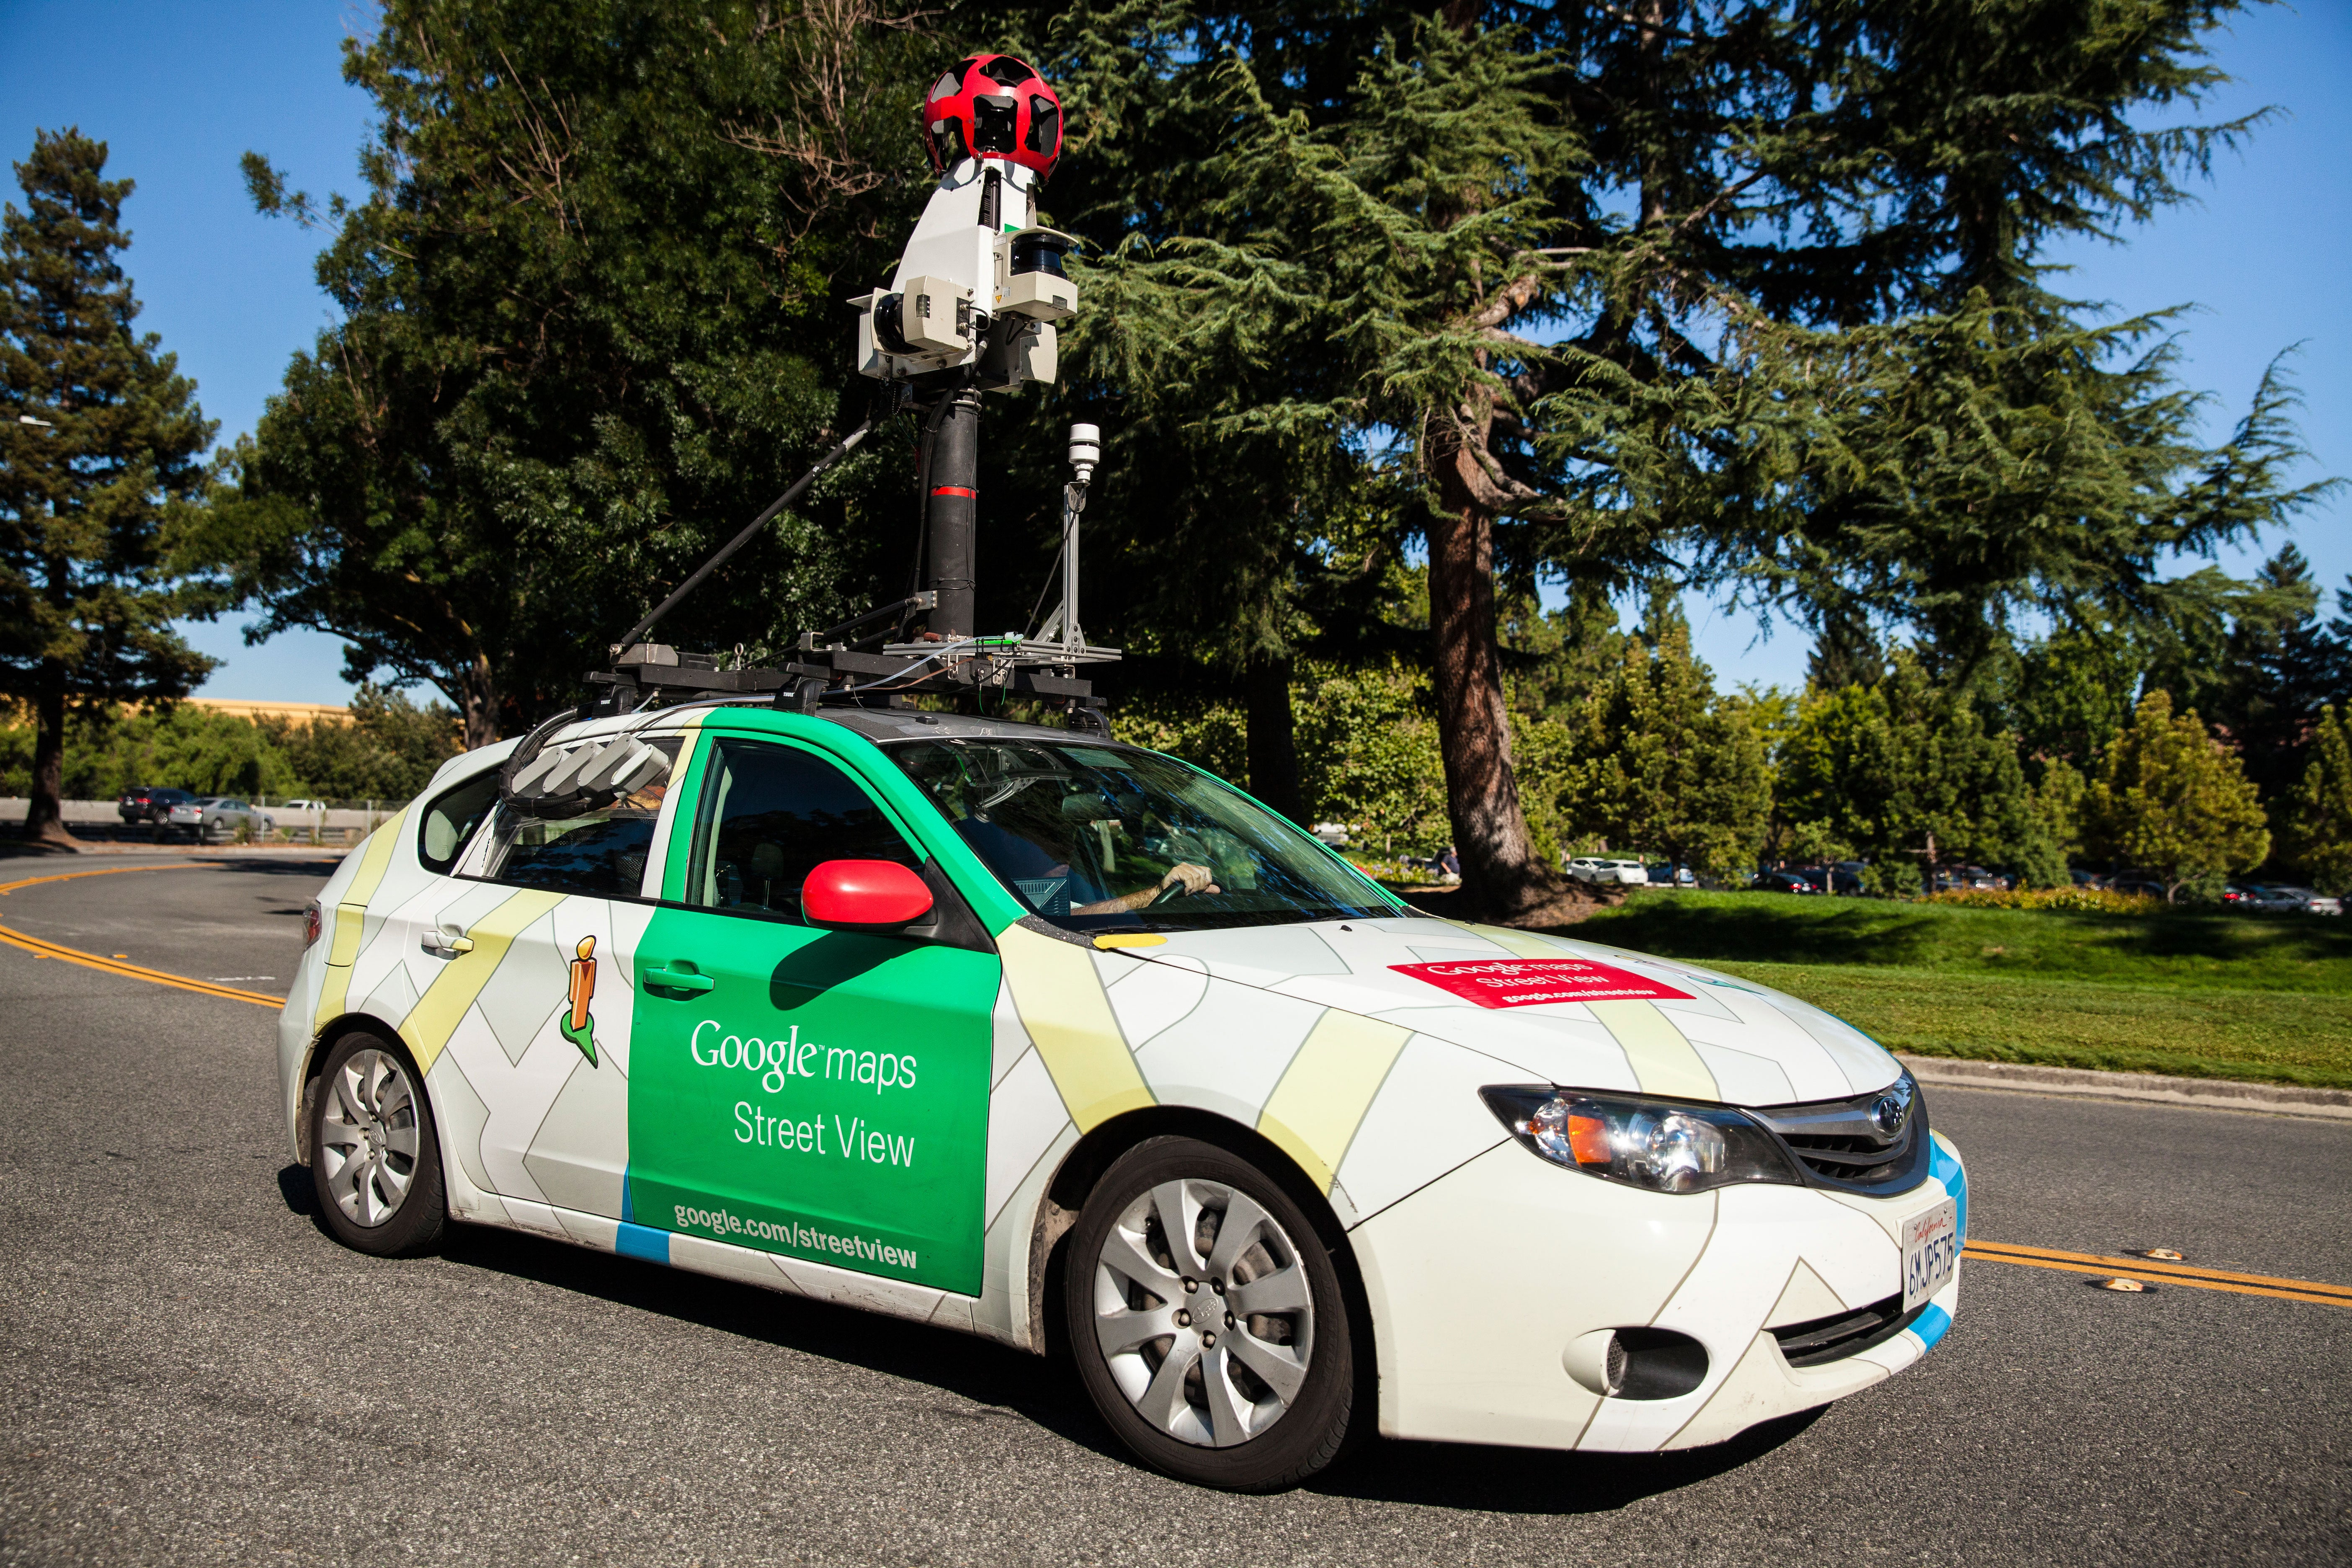 Google's Street View cars have caught themselves sding ... on google vehicle, microsoft car, googlr maps car, google street view in africa, google street view in latin america, google map person, web mapping, google street view, coolest car, google self-driving car, google street view in europe, google car that drives itself, google street view in asia, angry birds car, aspen movie map, google car crash, bing maps car, google street view in the united states, camera car, street view car, google bruxelles map, city view from car, google search, competition of google street view, google map us rivers, google earth, google street view privacy concerns, here maps car, google mapquest, google art project, mapquest maps car, google street view in oceania,